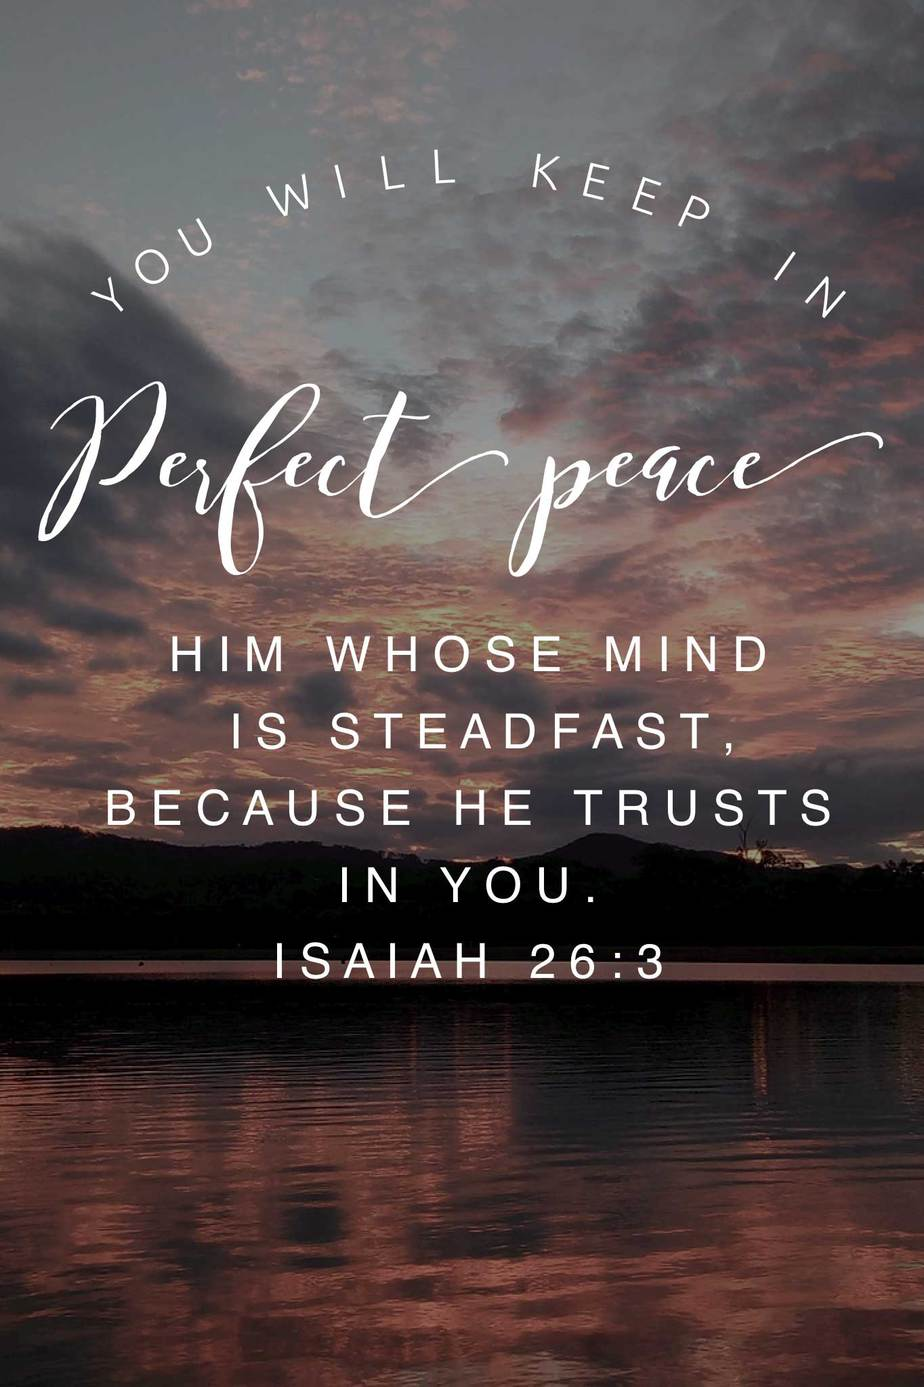 You will keep in perfect peace him whose mind is steadfast because He trusts in you. Isaiah 26:3 #HopePrevails #BibleVerse